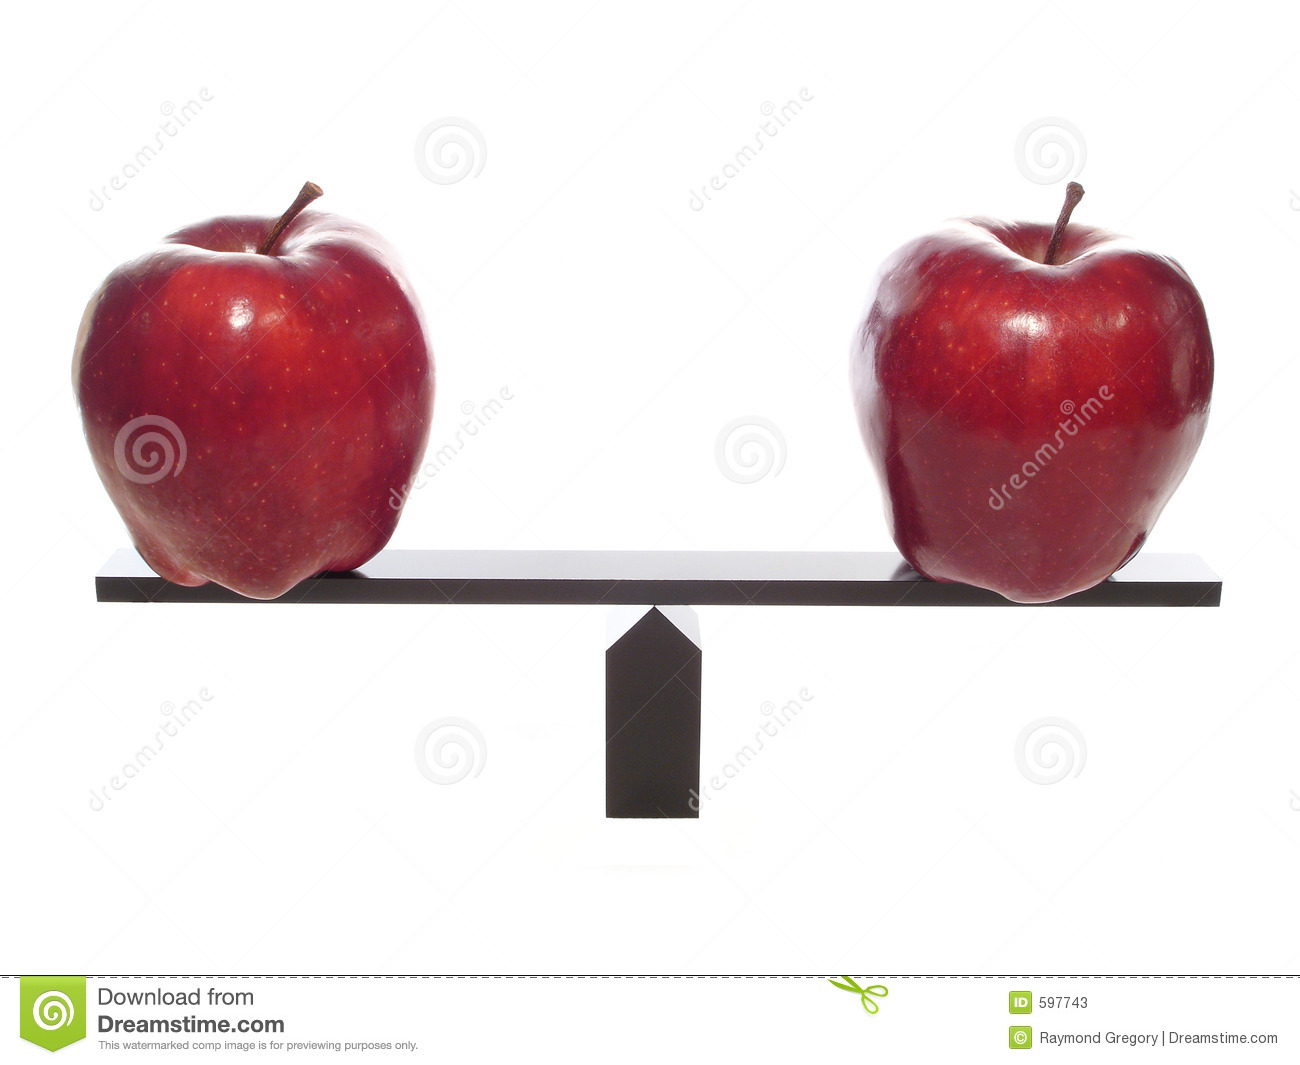 business map with Stock Photos  Paring Apples To Apples Metaphor Image597743 on Stock Photos  paring Apples To Apples Metaphor Image597743 also Windsor Johnston Moves additionally Haifa Old Meets New additionally About Us as well Swot Analysis.